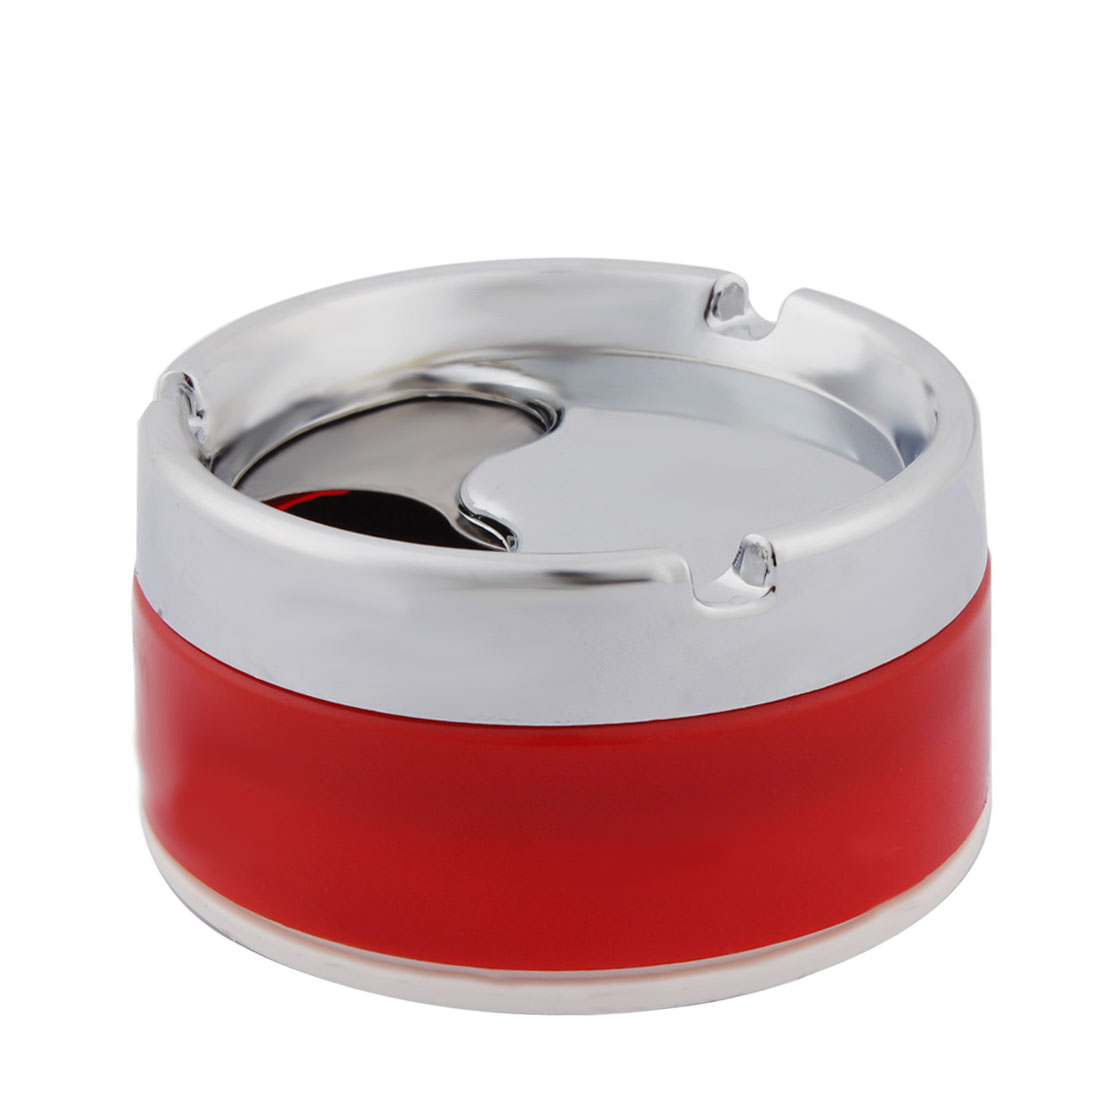 Household Cylinder Shape 3 Grooves Design Rotatable Cigarette Holder Ashtray Container Red